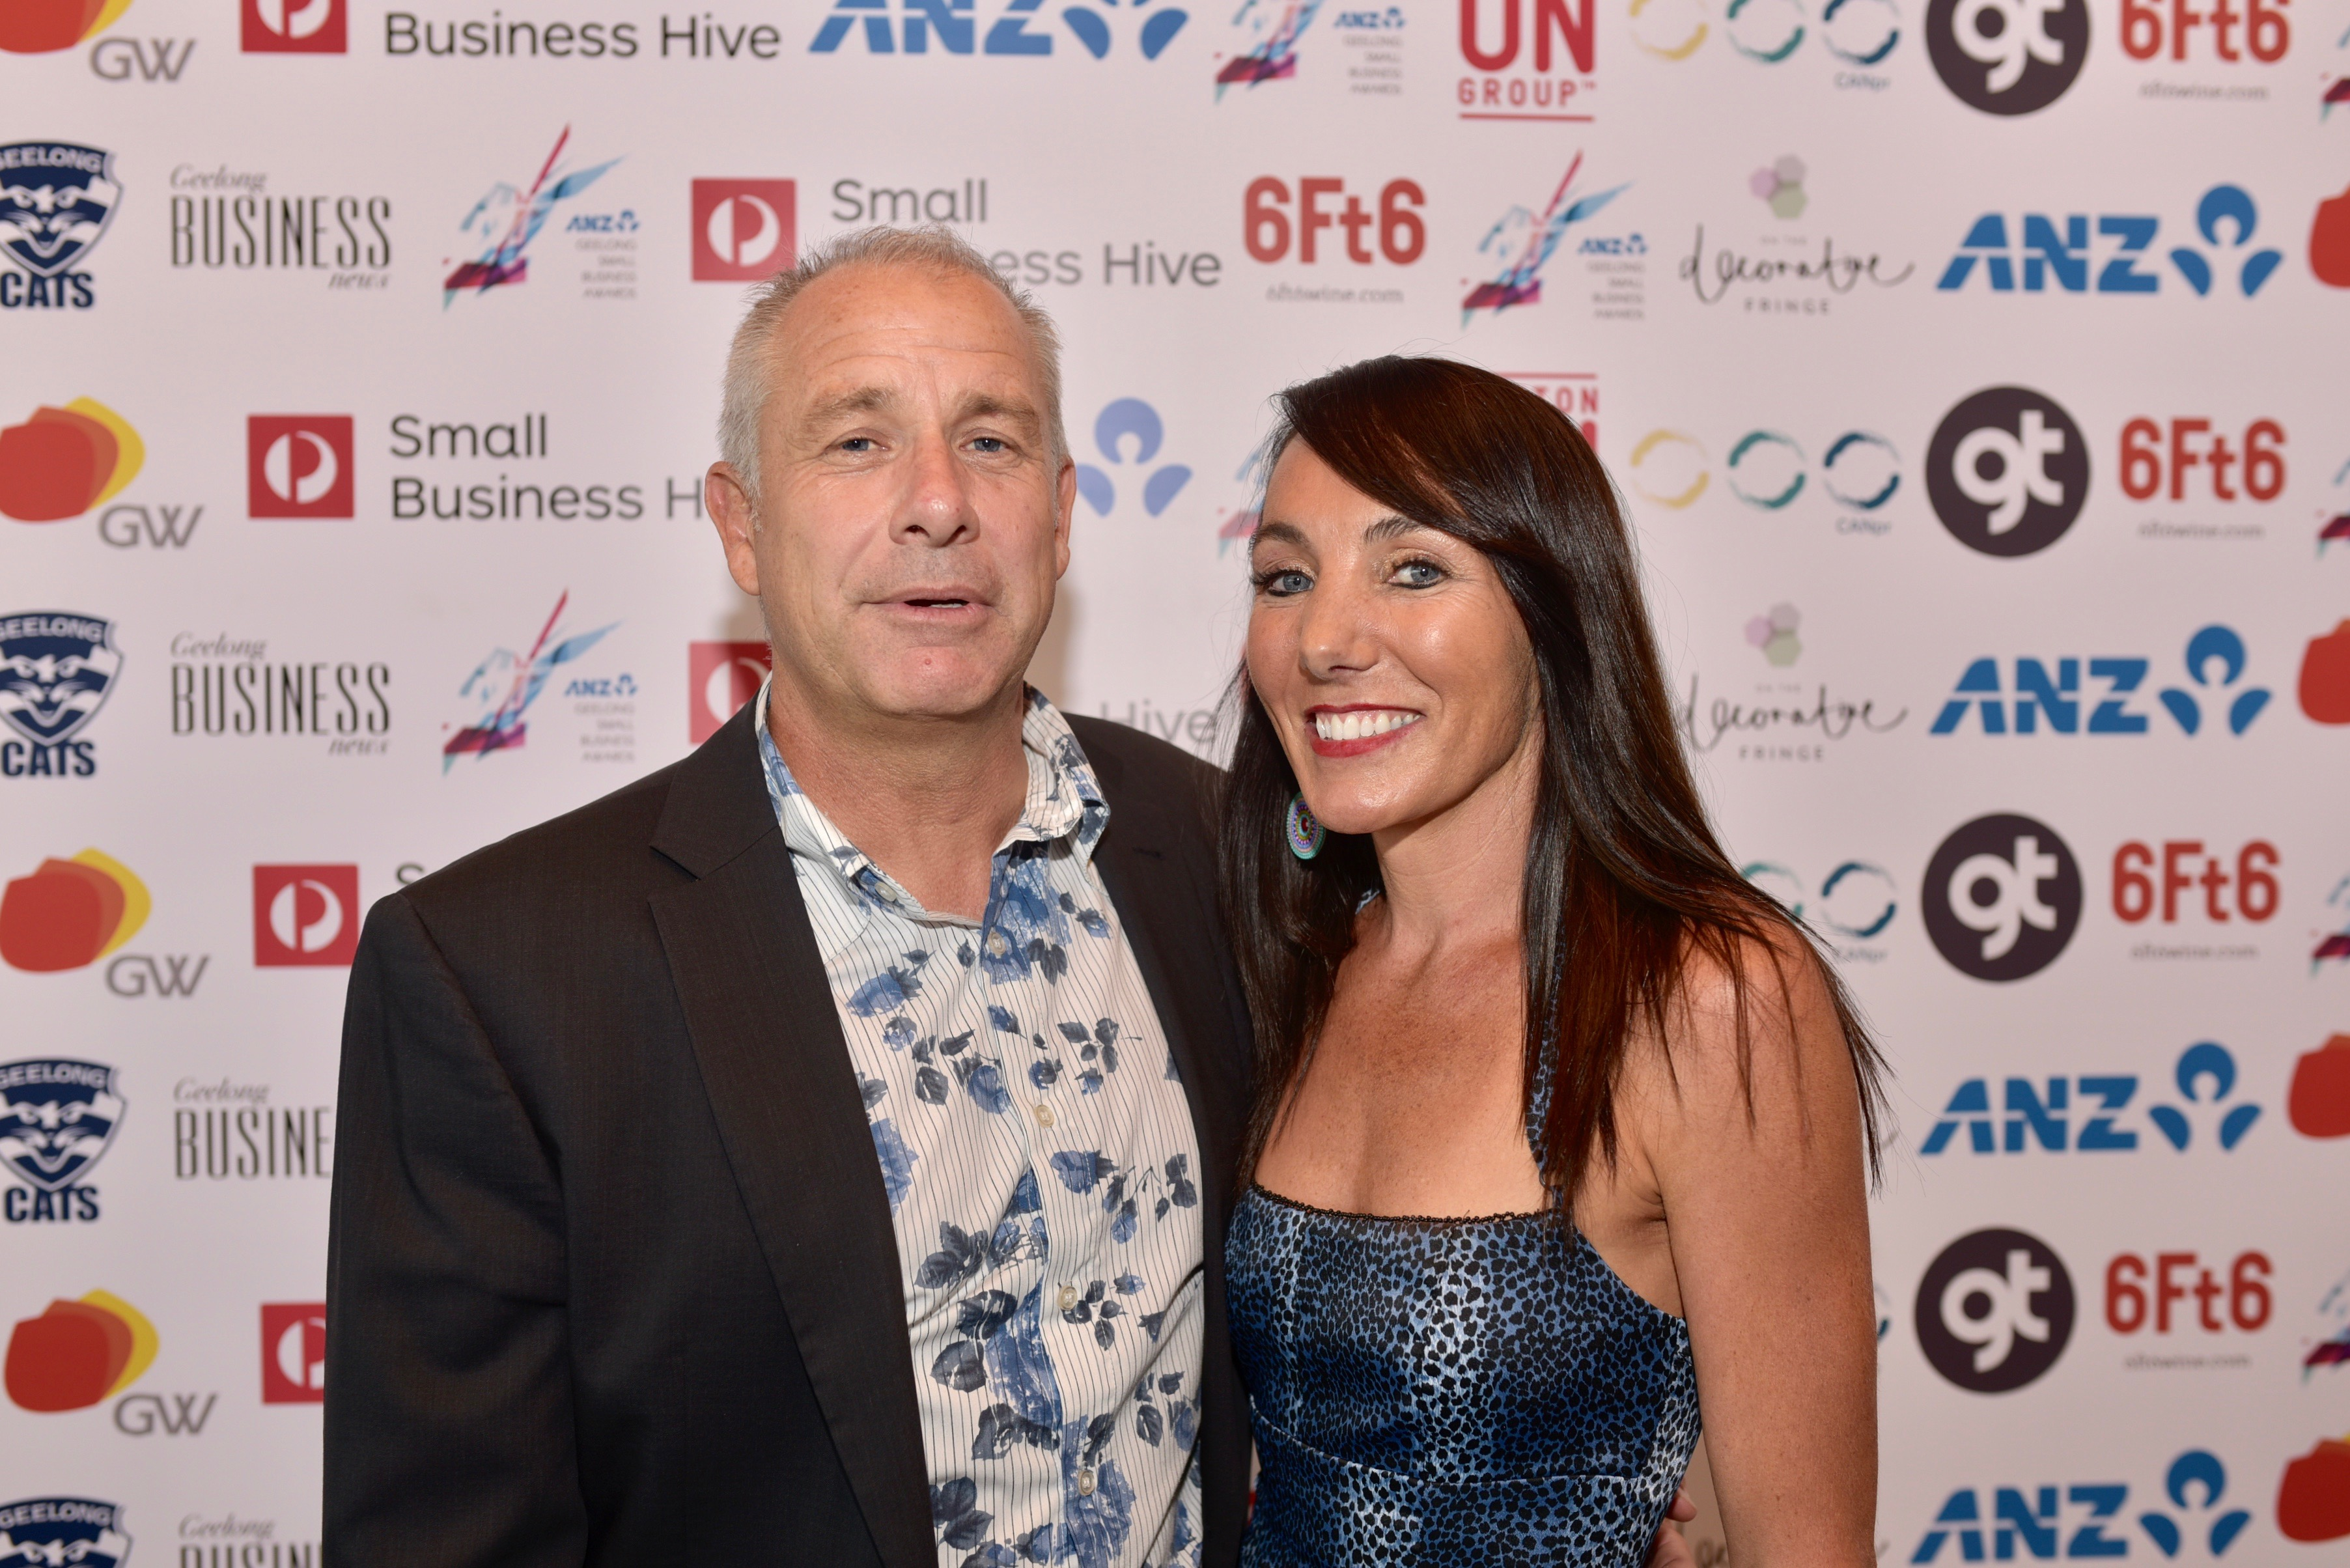 Geelong Small Business Awards5